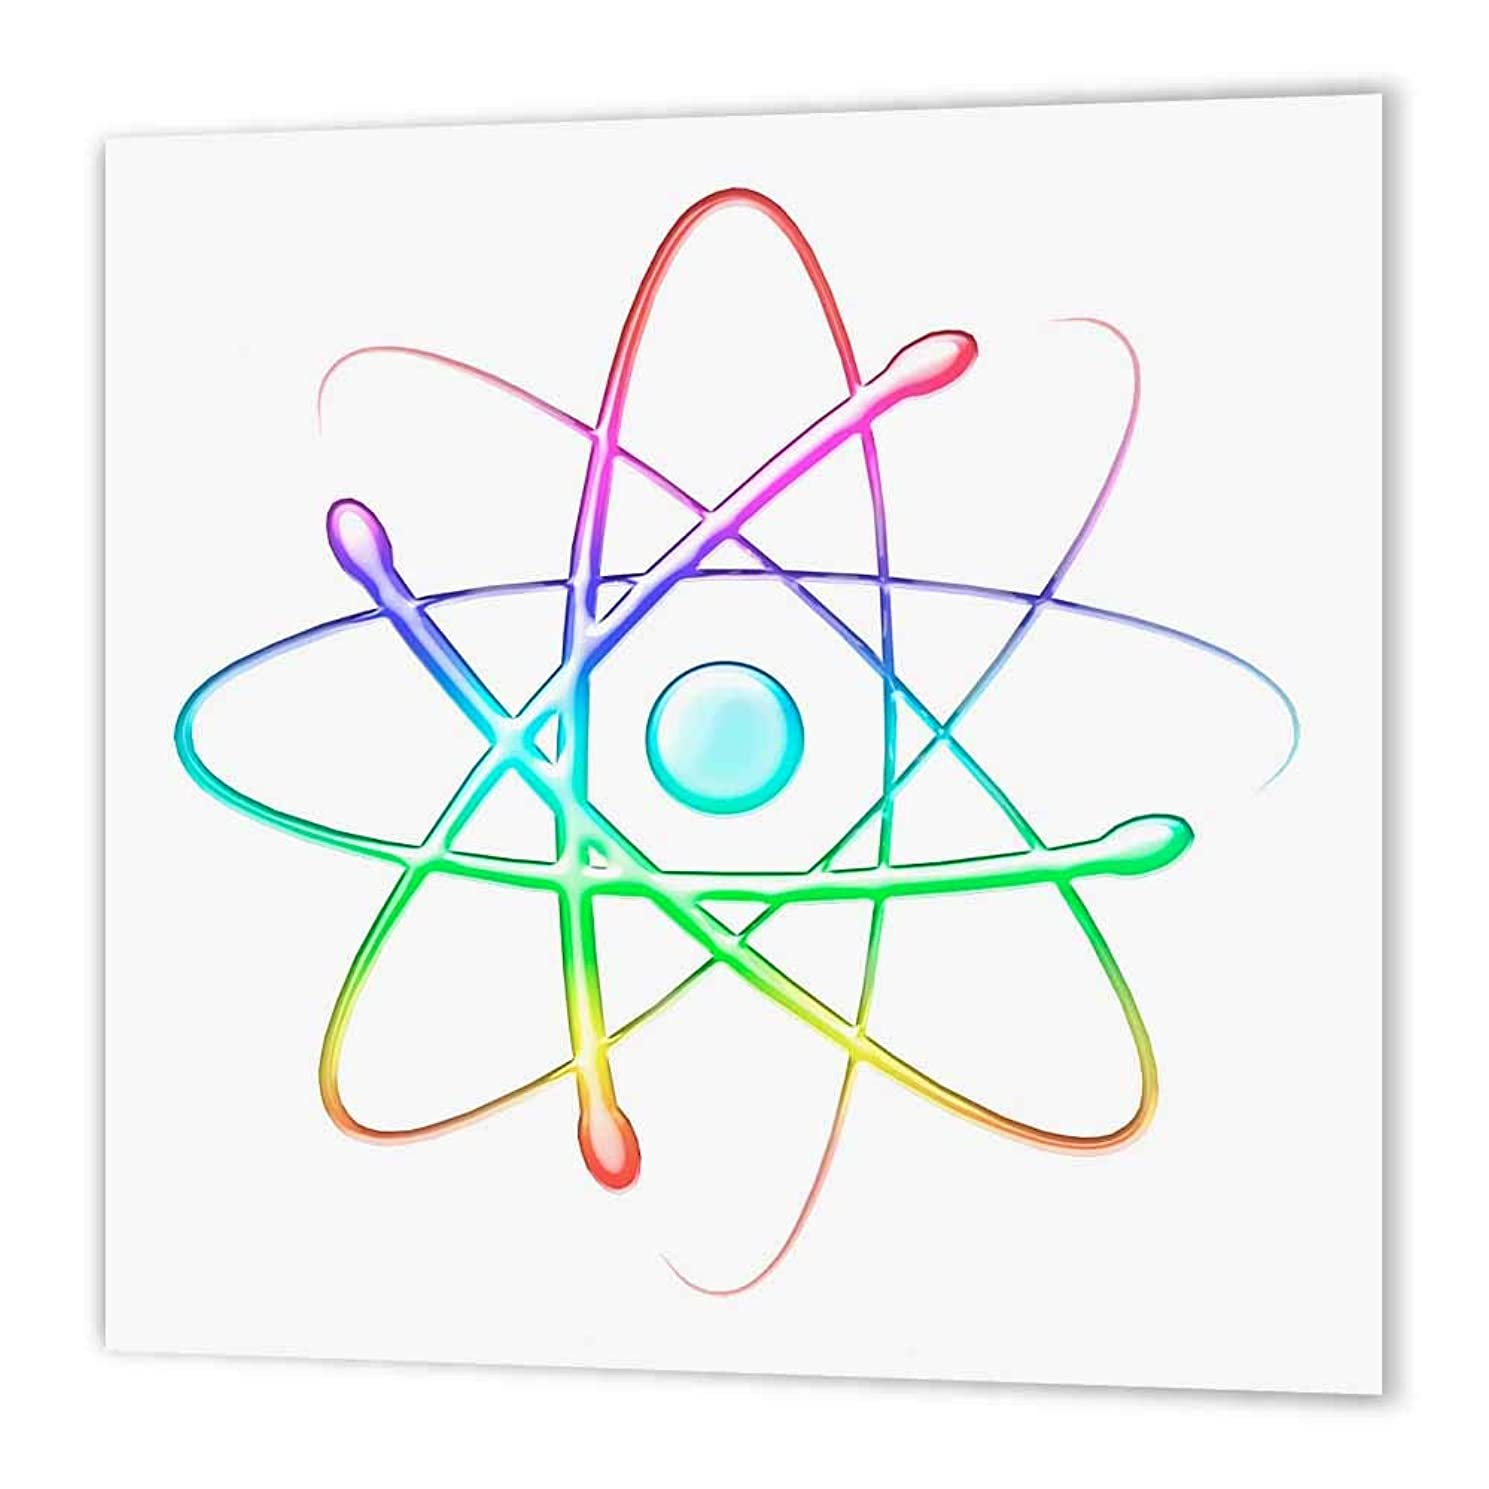 3dRose ht_41765_3 Rainbow Atom Symbol-Iron on Heat Transfer Paper for White Material, 10 by 10-Inch